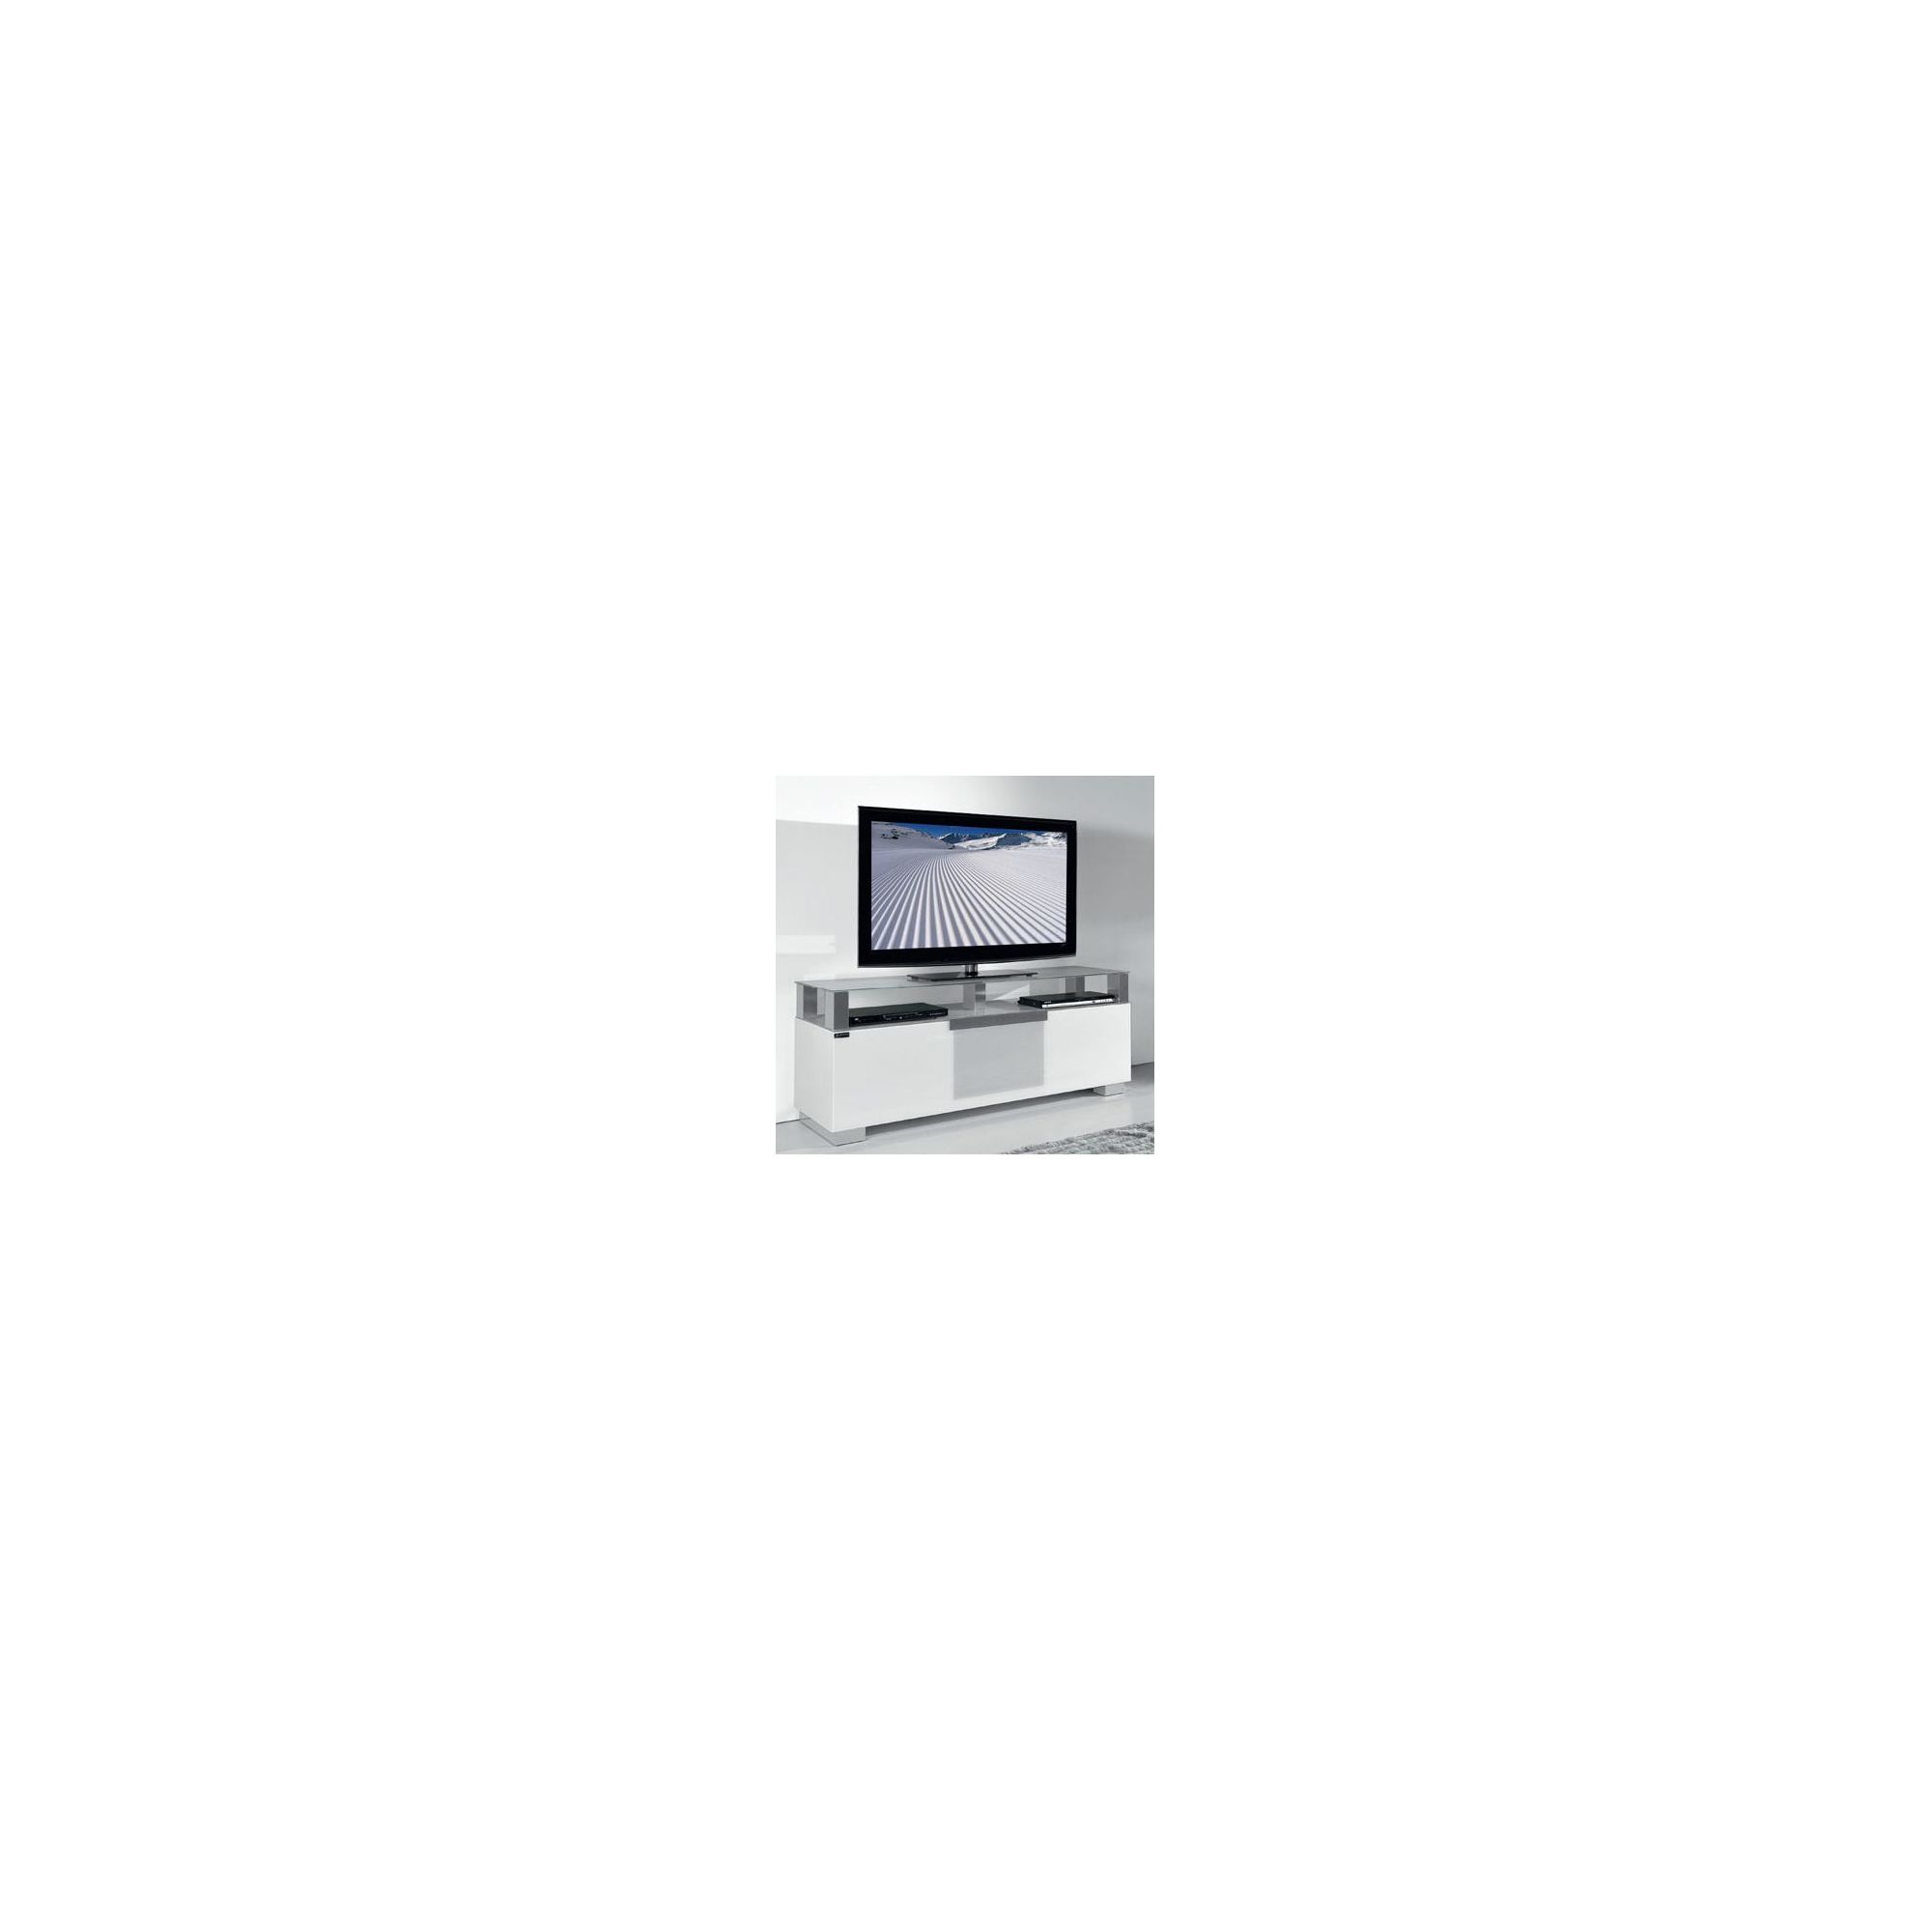 Triskom Wooden TV Stand for LCD / Plasmas with Three Shelves - White Glass at Tesco Direct